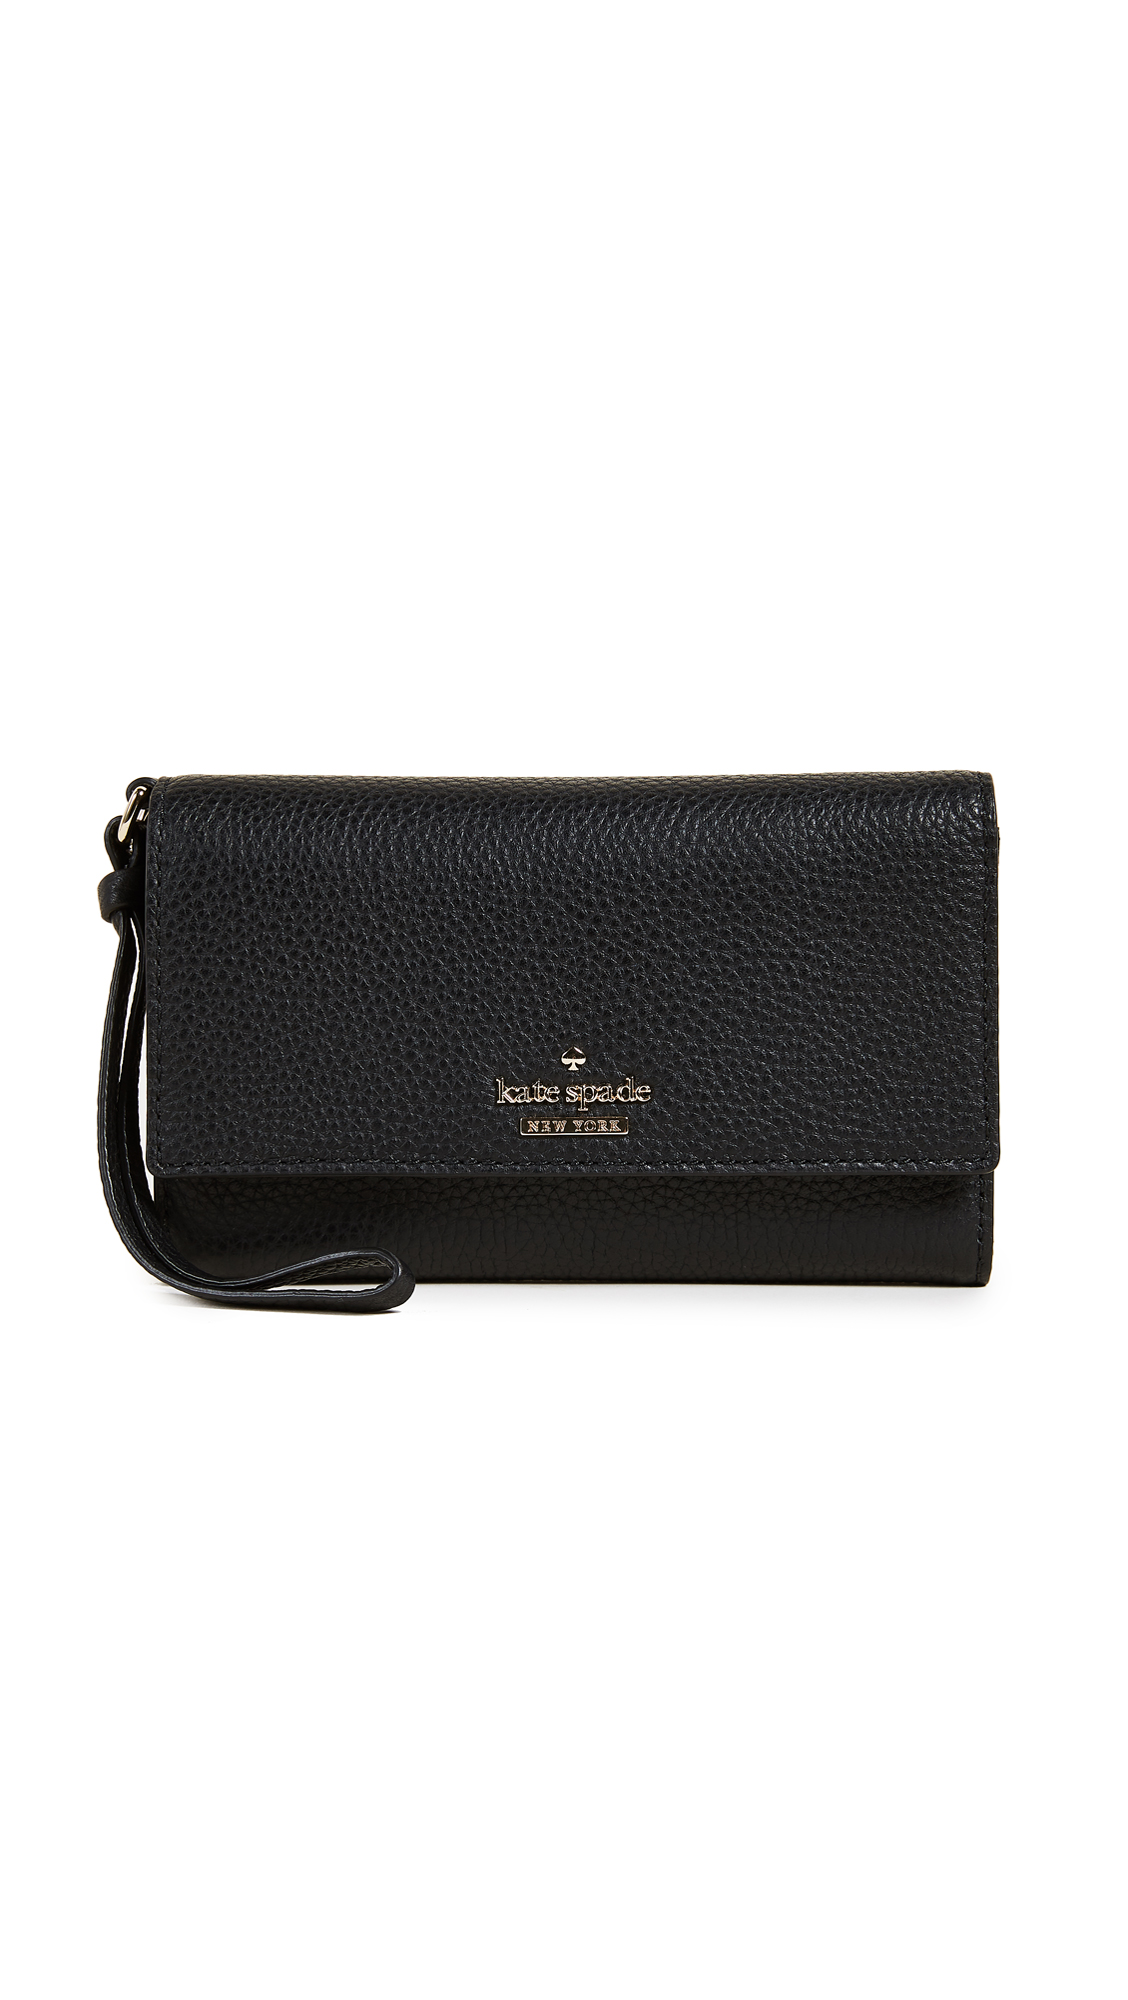 Kate Spade New York Jackson Street Malorie Wallet - Black